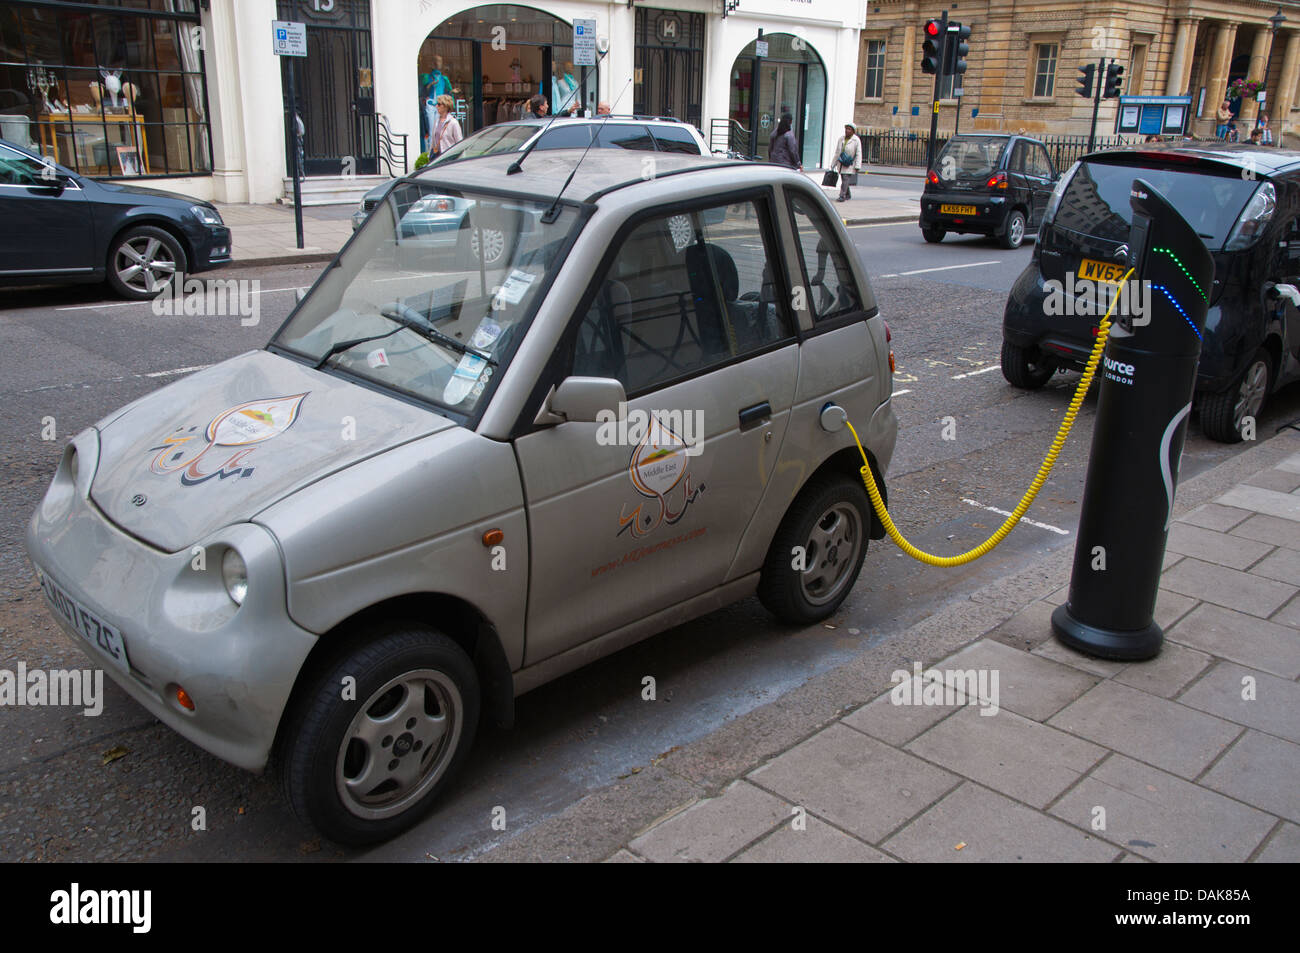 Electric car charging station or charging point Marylebone central London England Britain UK Europe Stock Photo